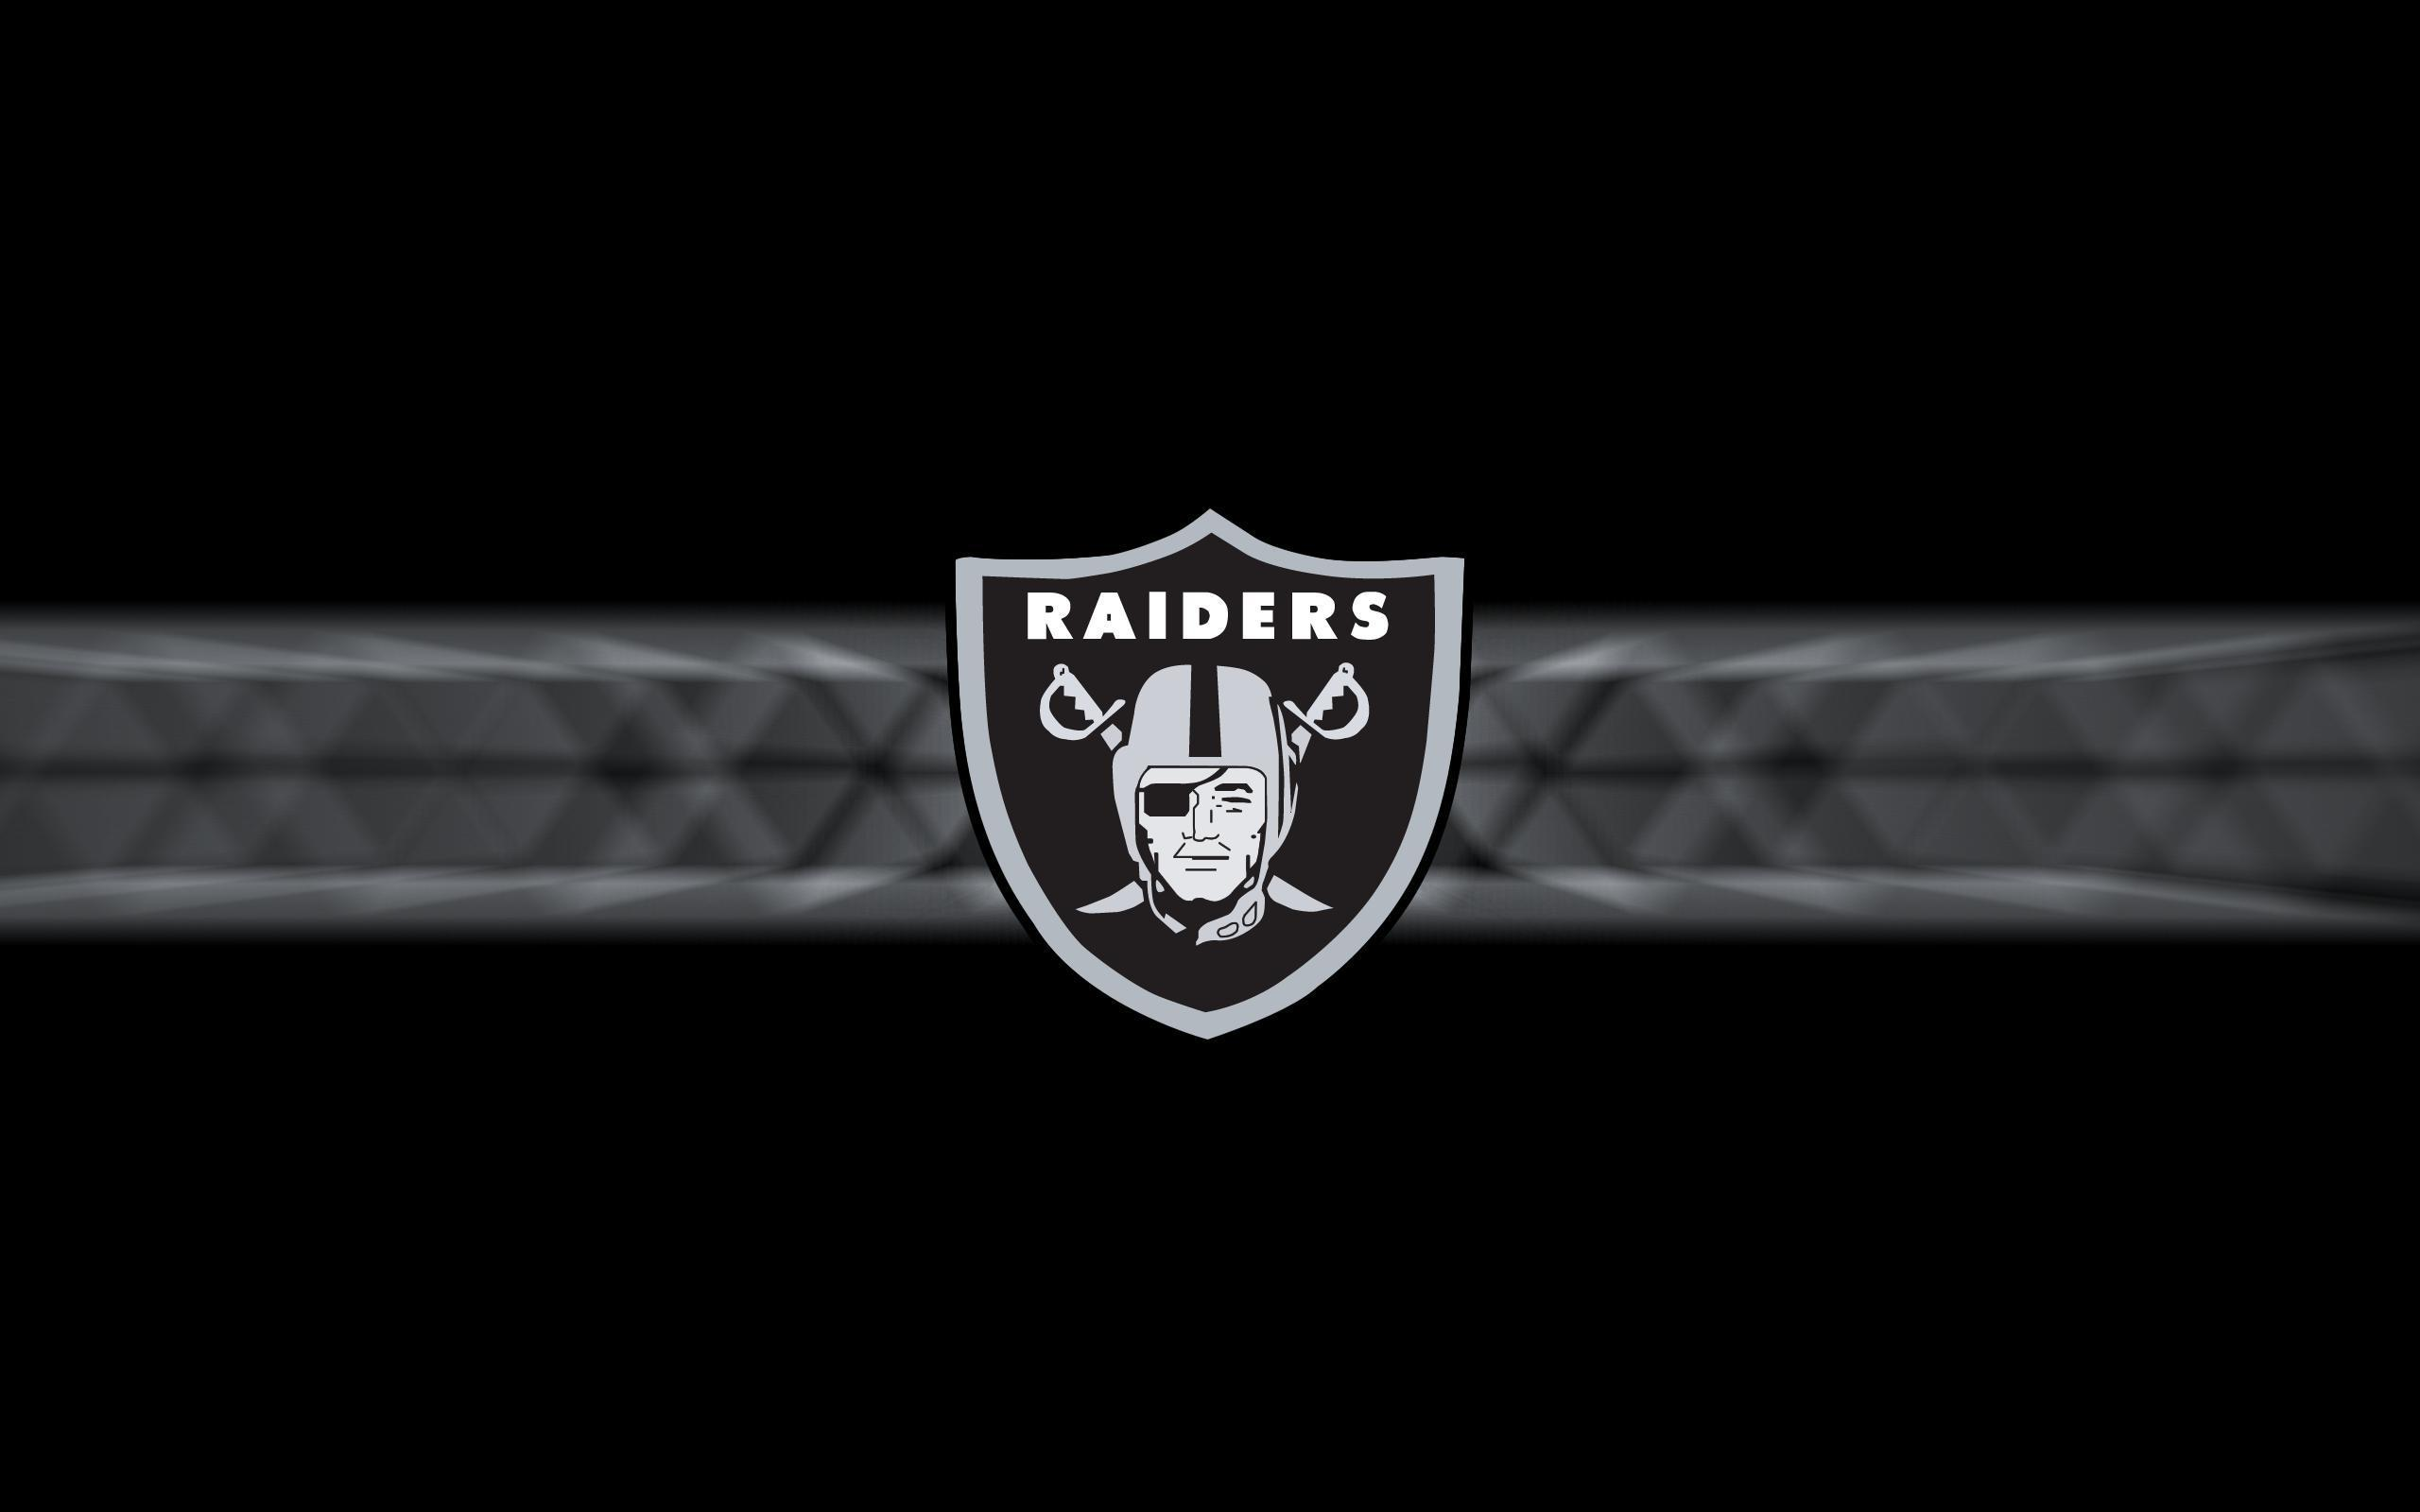 Oakland Raiders Wallpapers 2560x1600